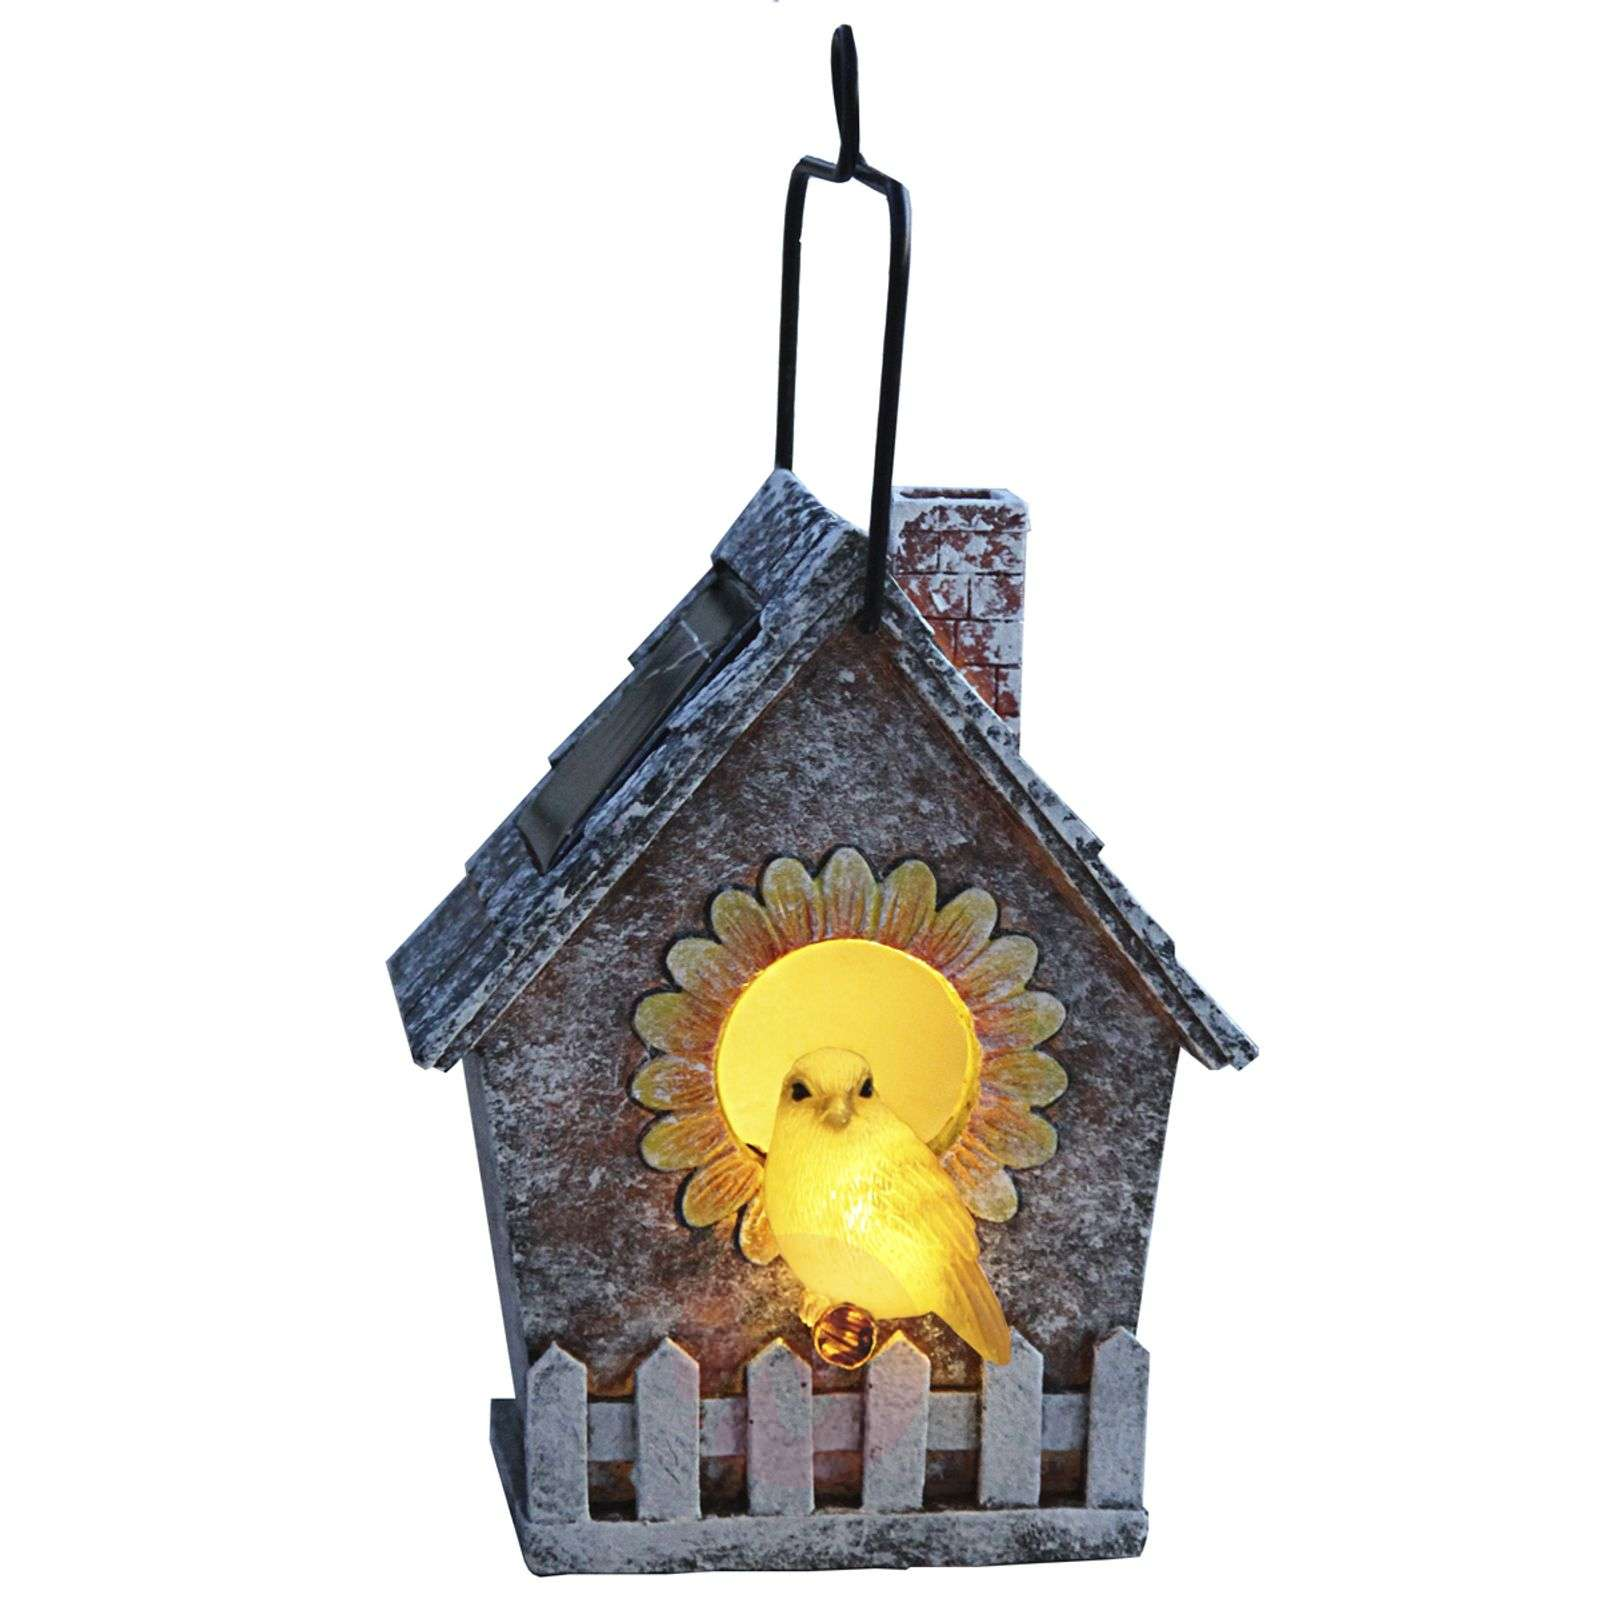 LED solar lamp Bird House-1522720-01